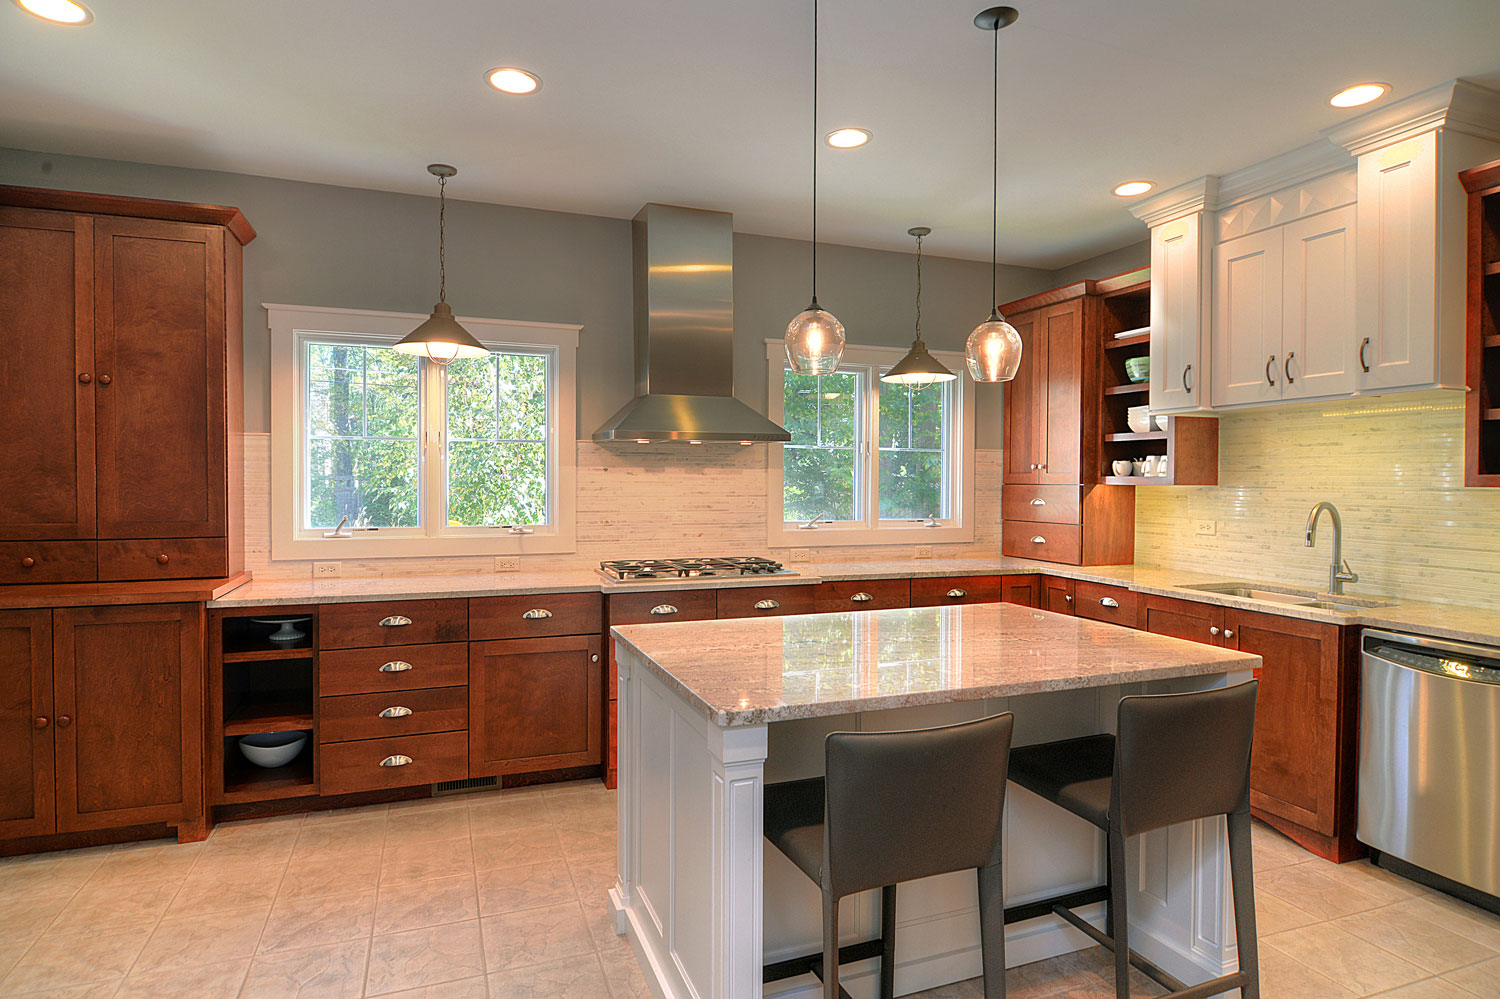 Brian & Mary's Kitchen Remodel Pictures | Home Remodeling ...